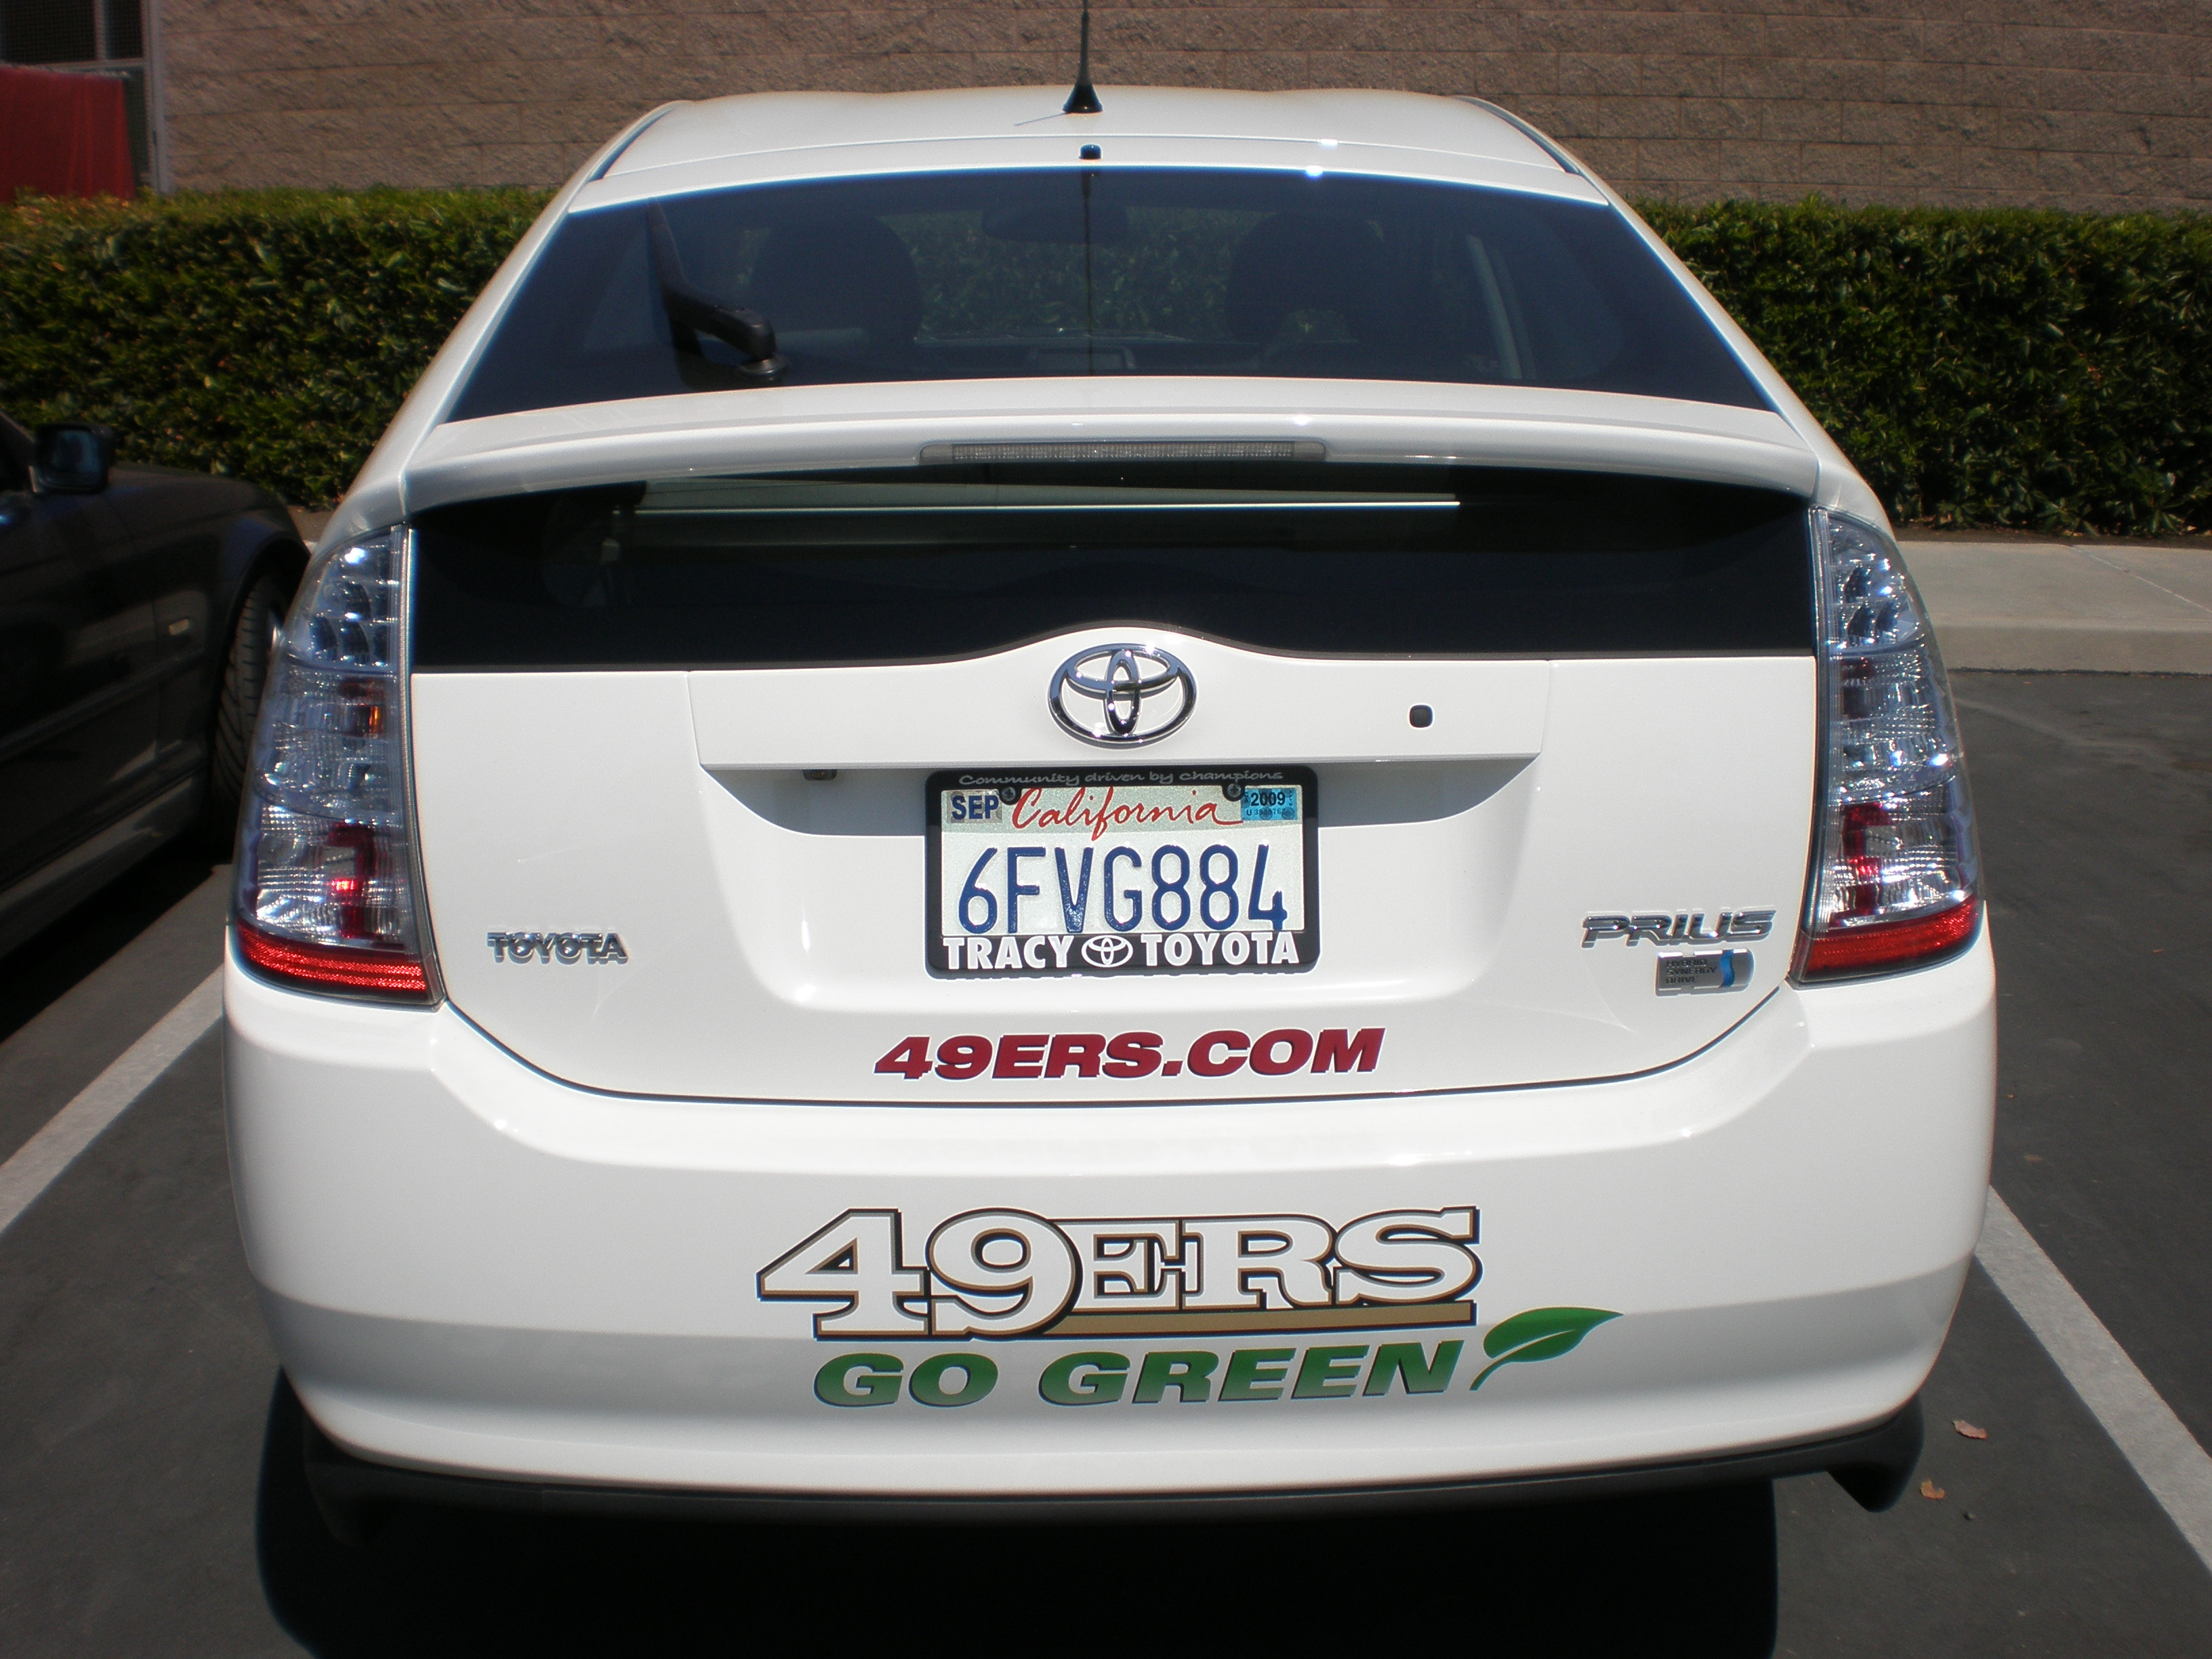 Used Toyota Prius >> File:SF 49ers white Toyota Prius NHW20 rear.JPG - Wikimedia Commons